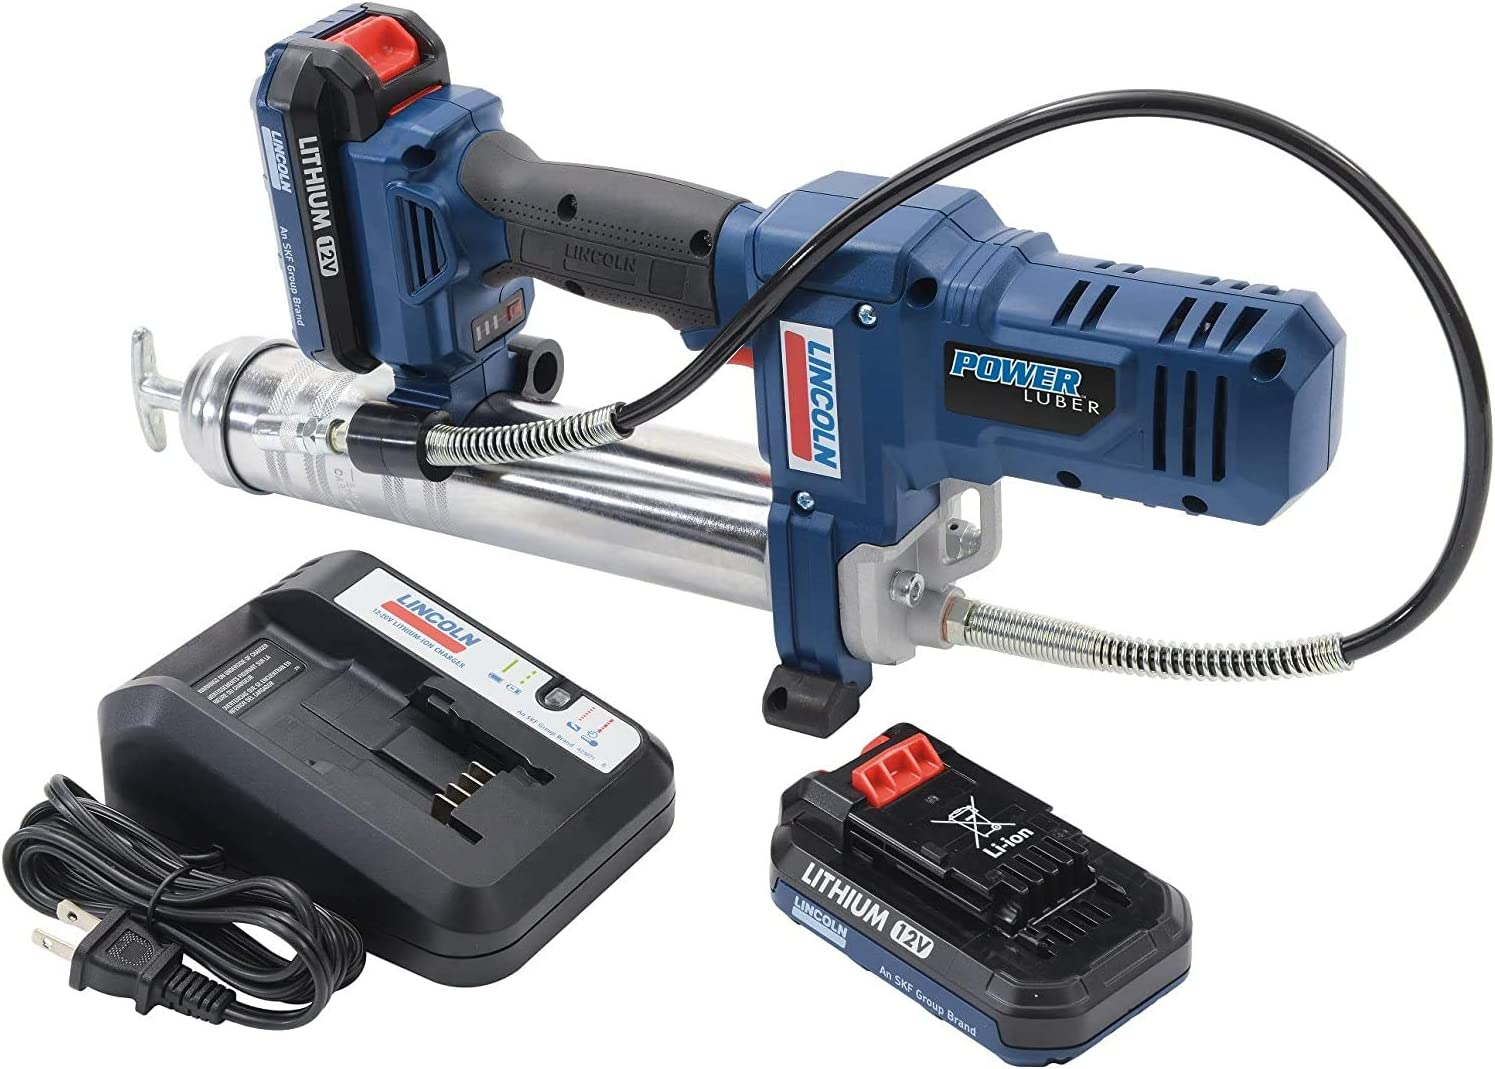 Lincoln 1264 Battery Powered PowerLuber 12 Volt Lithium Ion 8,000 PSI Cordless Grease Gun 2 Battery Kit